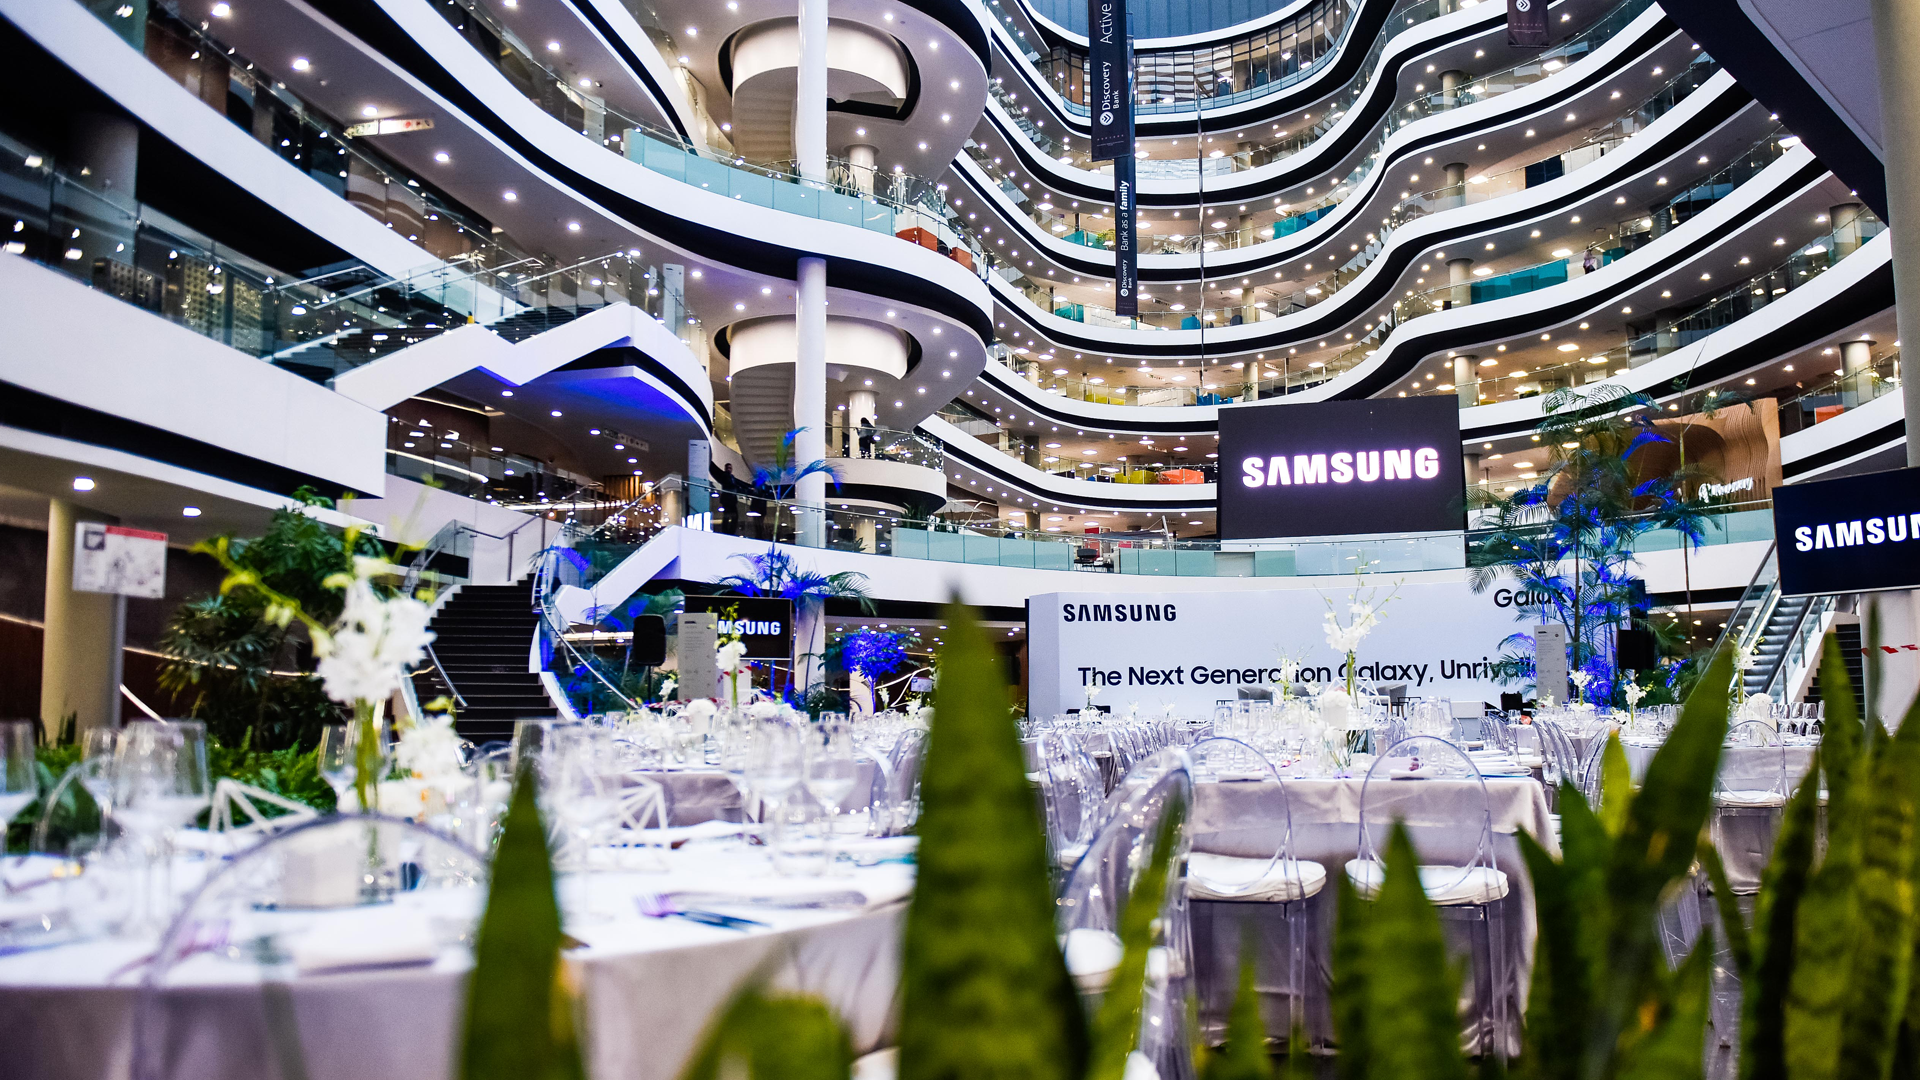 samsung galaxy s10 launch event sandton